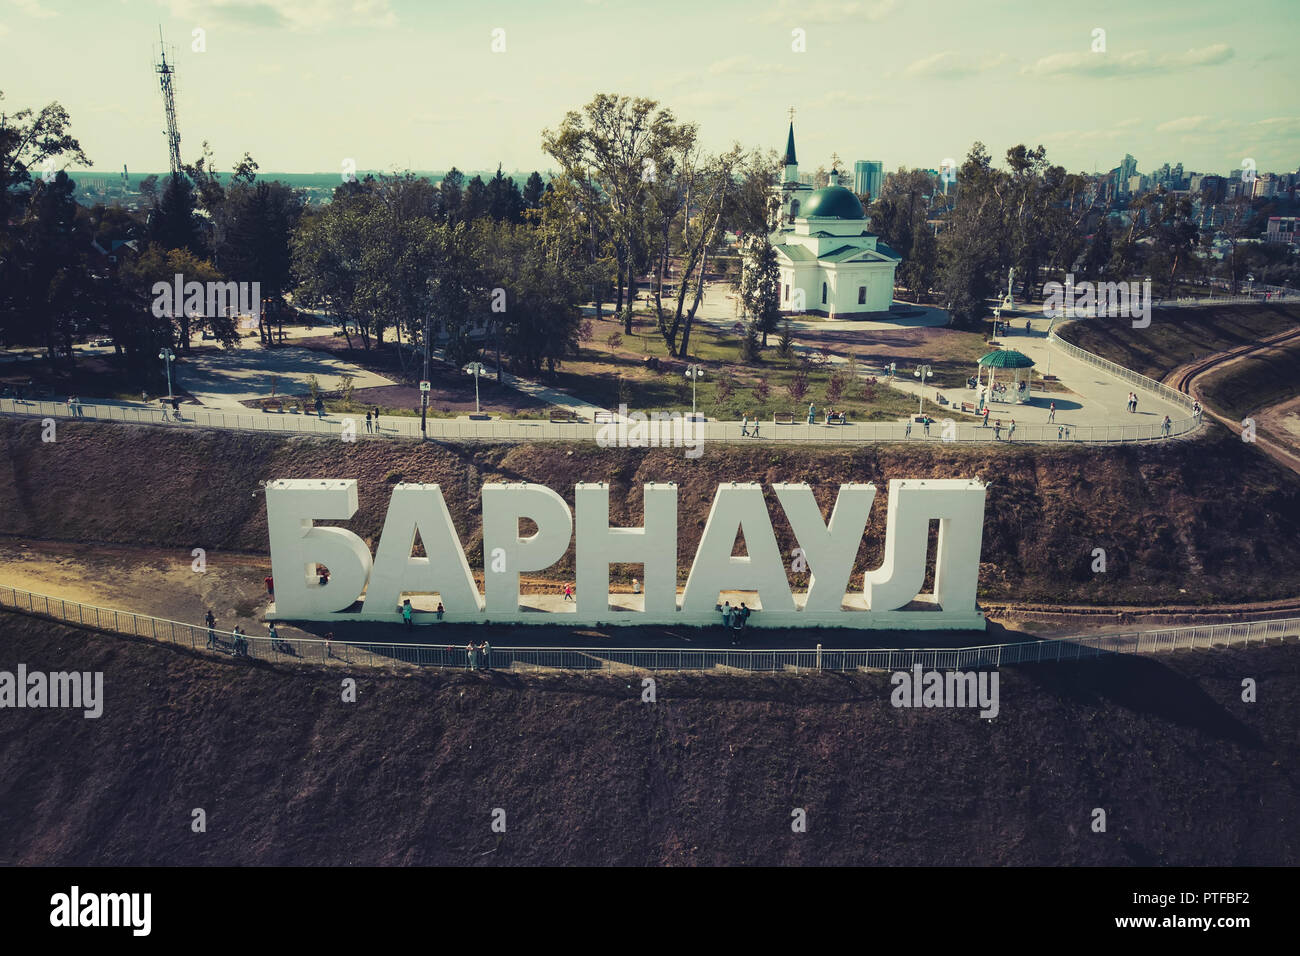 A close up to the hill with the letters spelling out a Russian city's name, a park and a church at the background. Recognized city symbol and architrc - Stock Image